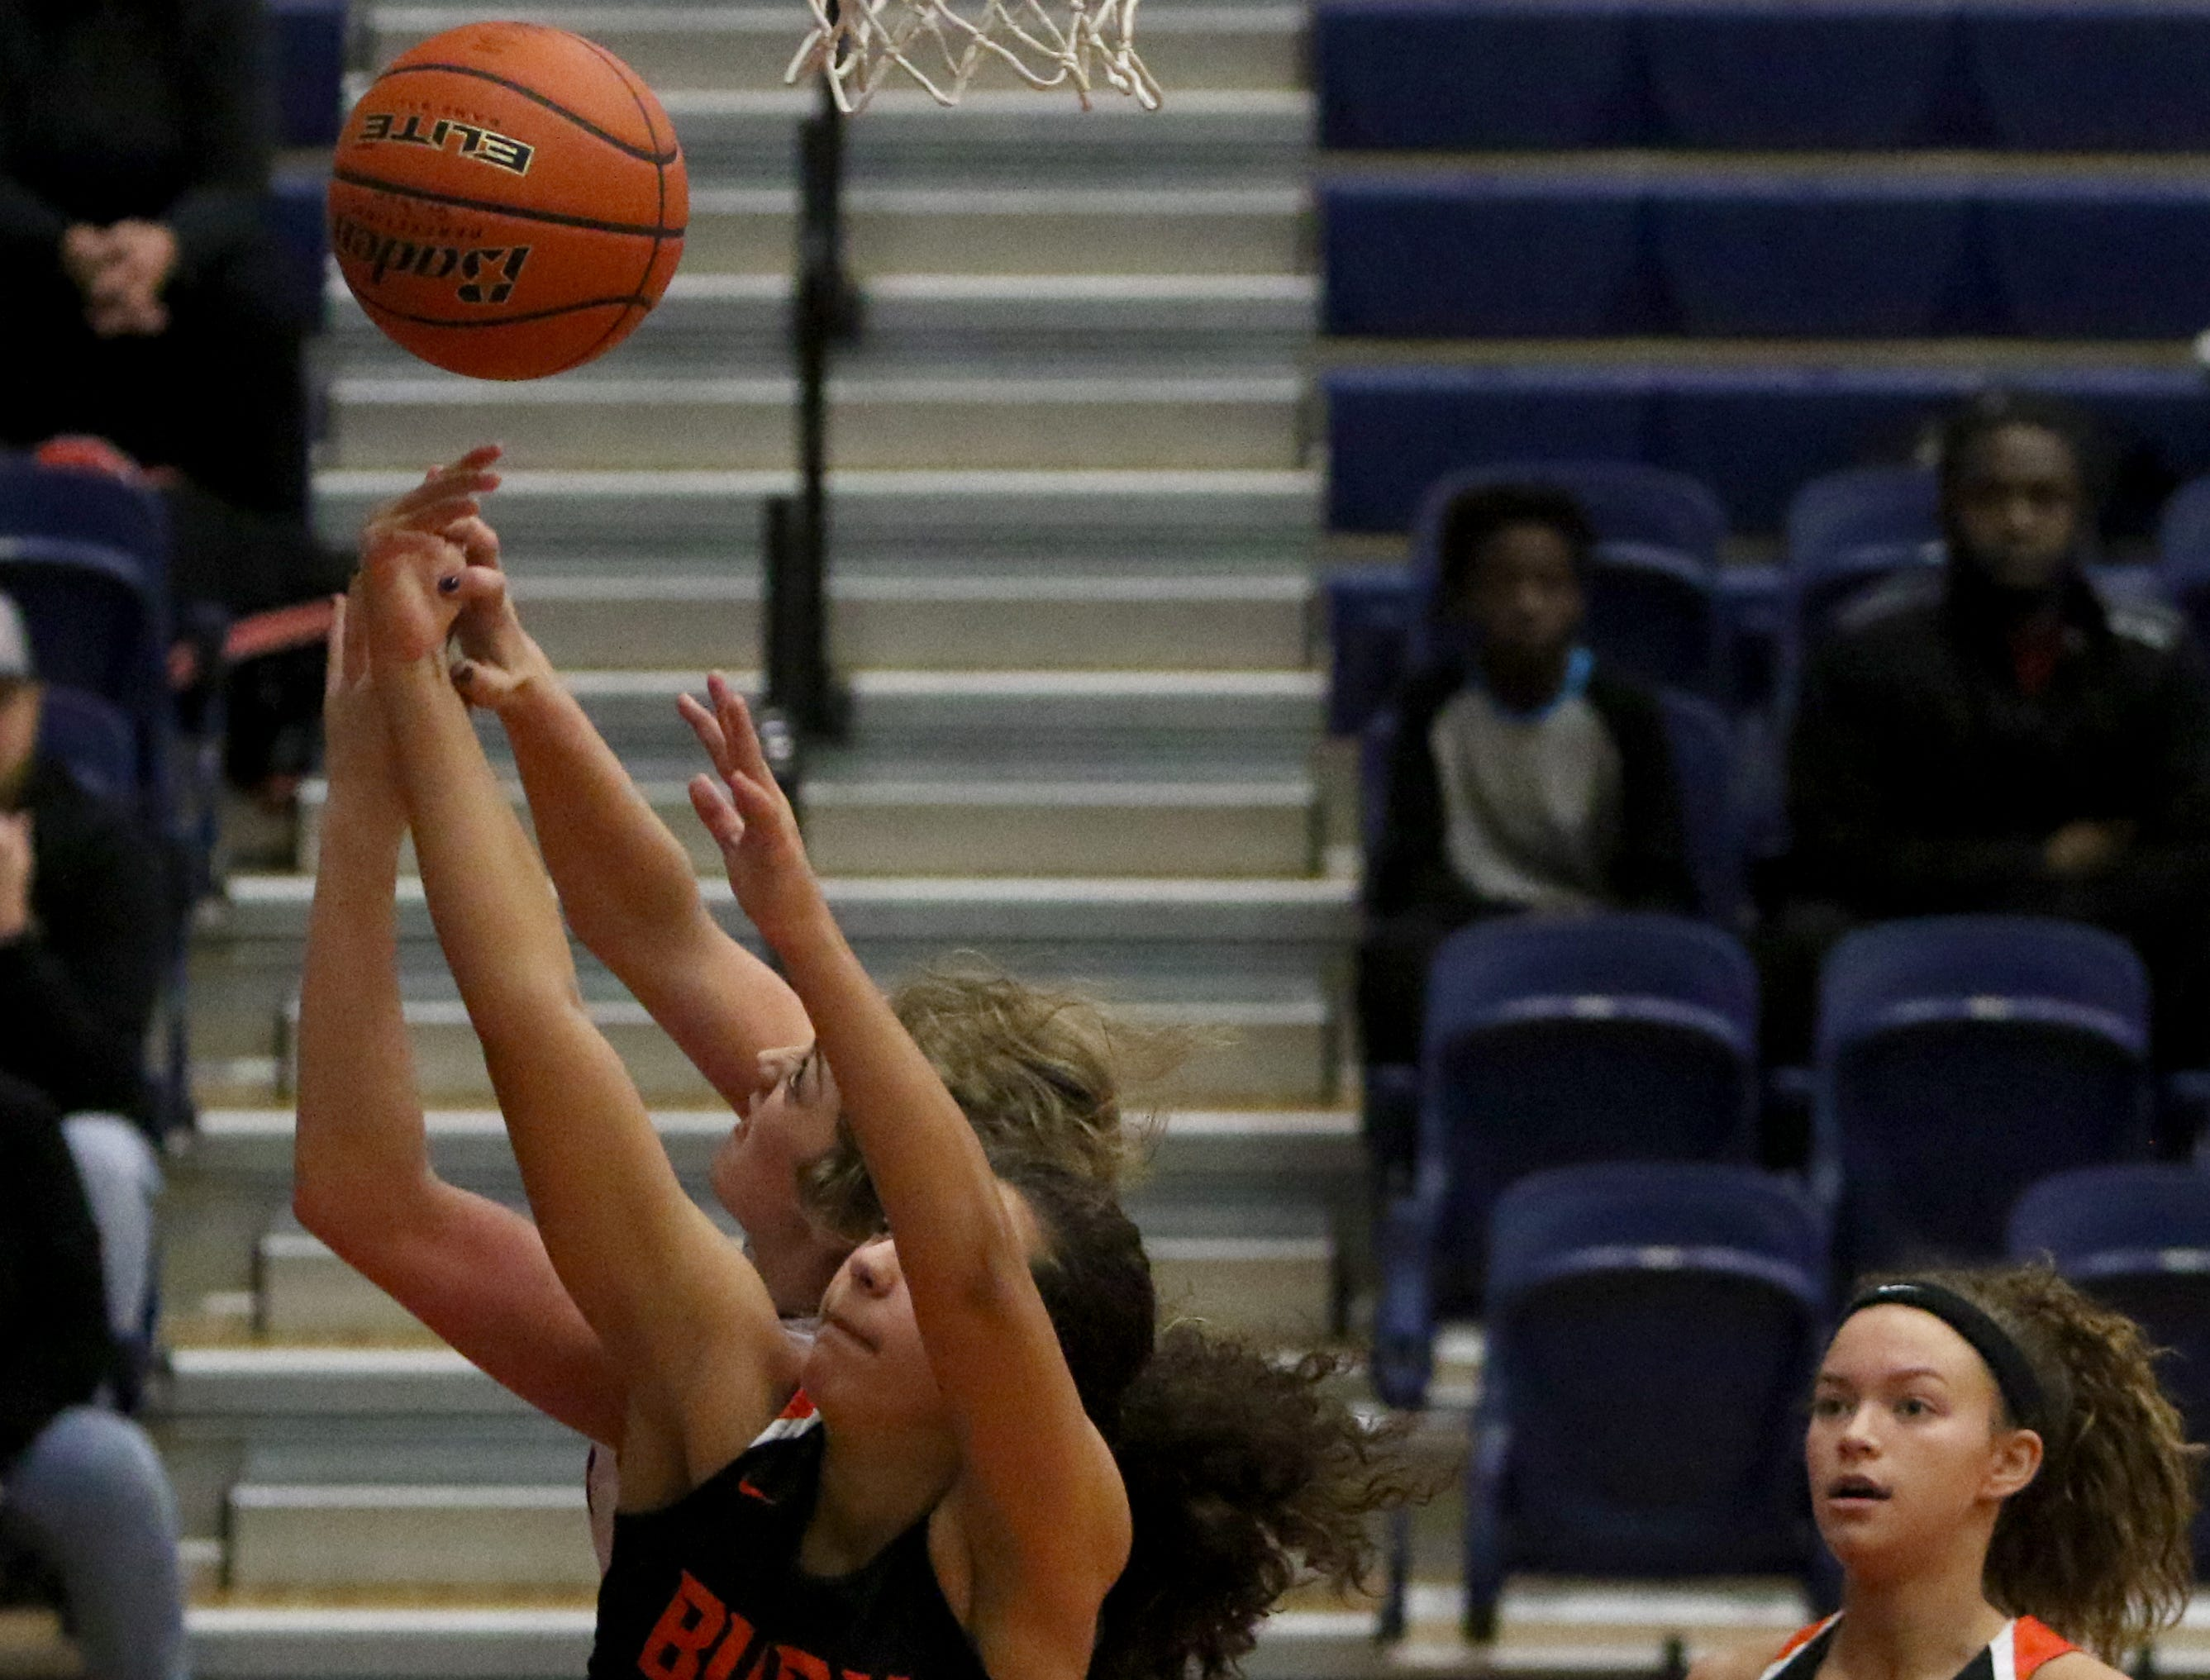 Burkburnett's Raegan King reaches for the rebound in the game against Graham Friday, Jan. 4, 2019, in Graham. The Lady Blues defeated the Lady Bulldogs 51-33.